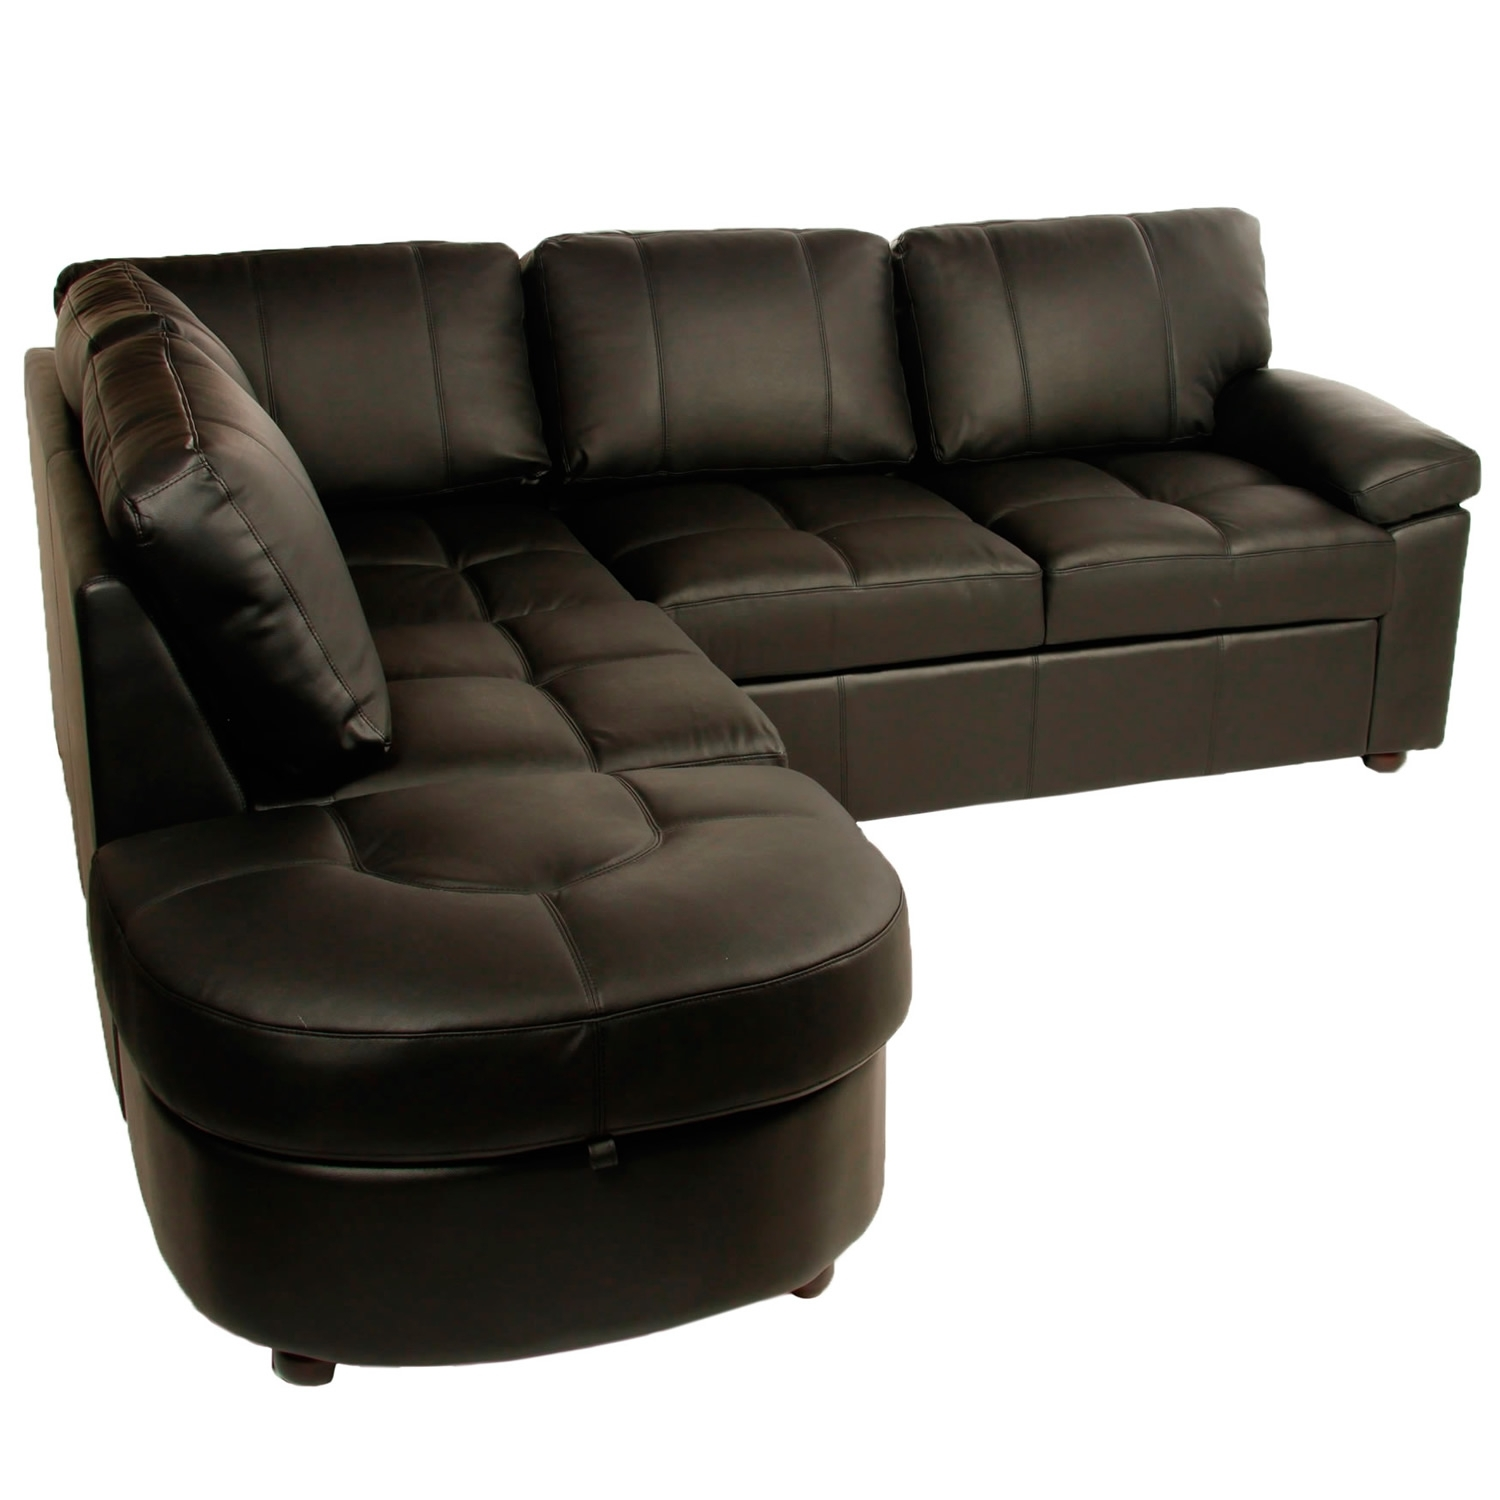 Lina Black Leather Corner Sofa Bed With Storage – Sofabedsworld (View 5 of 10)